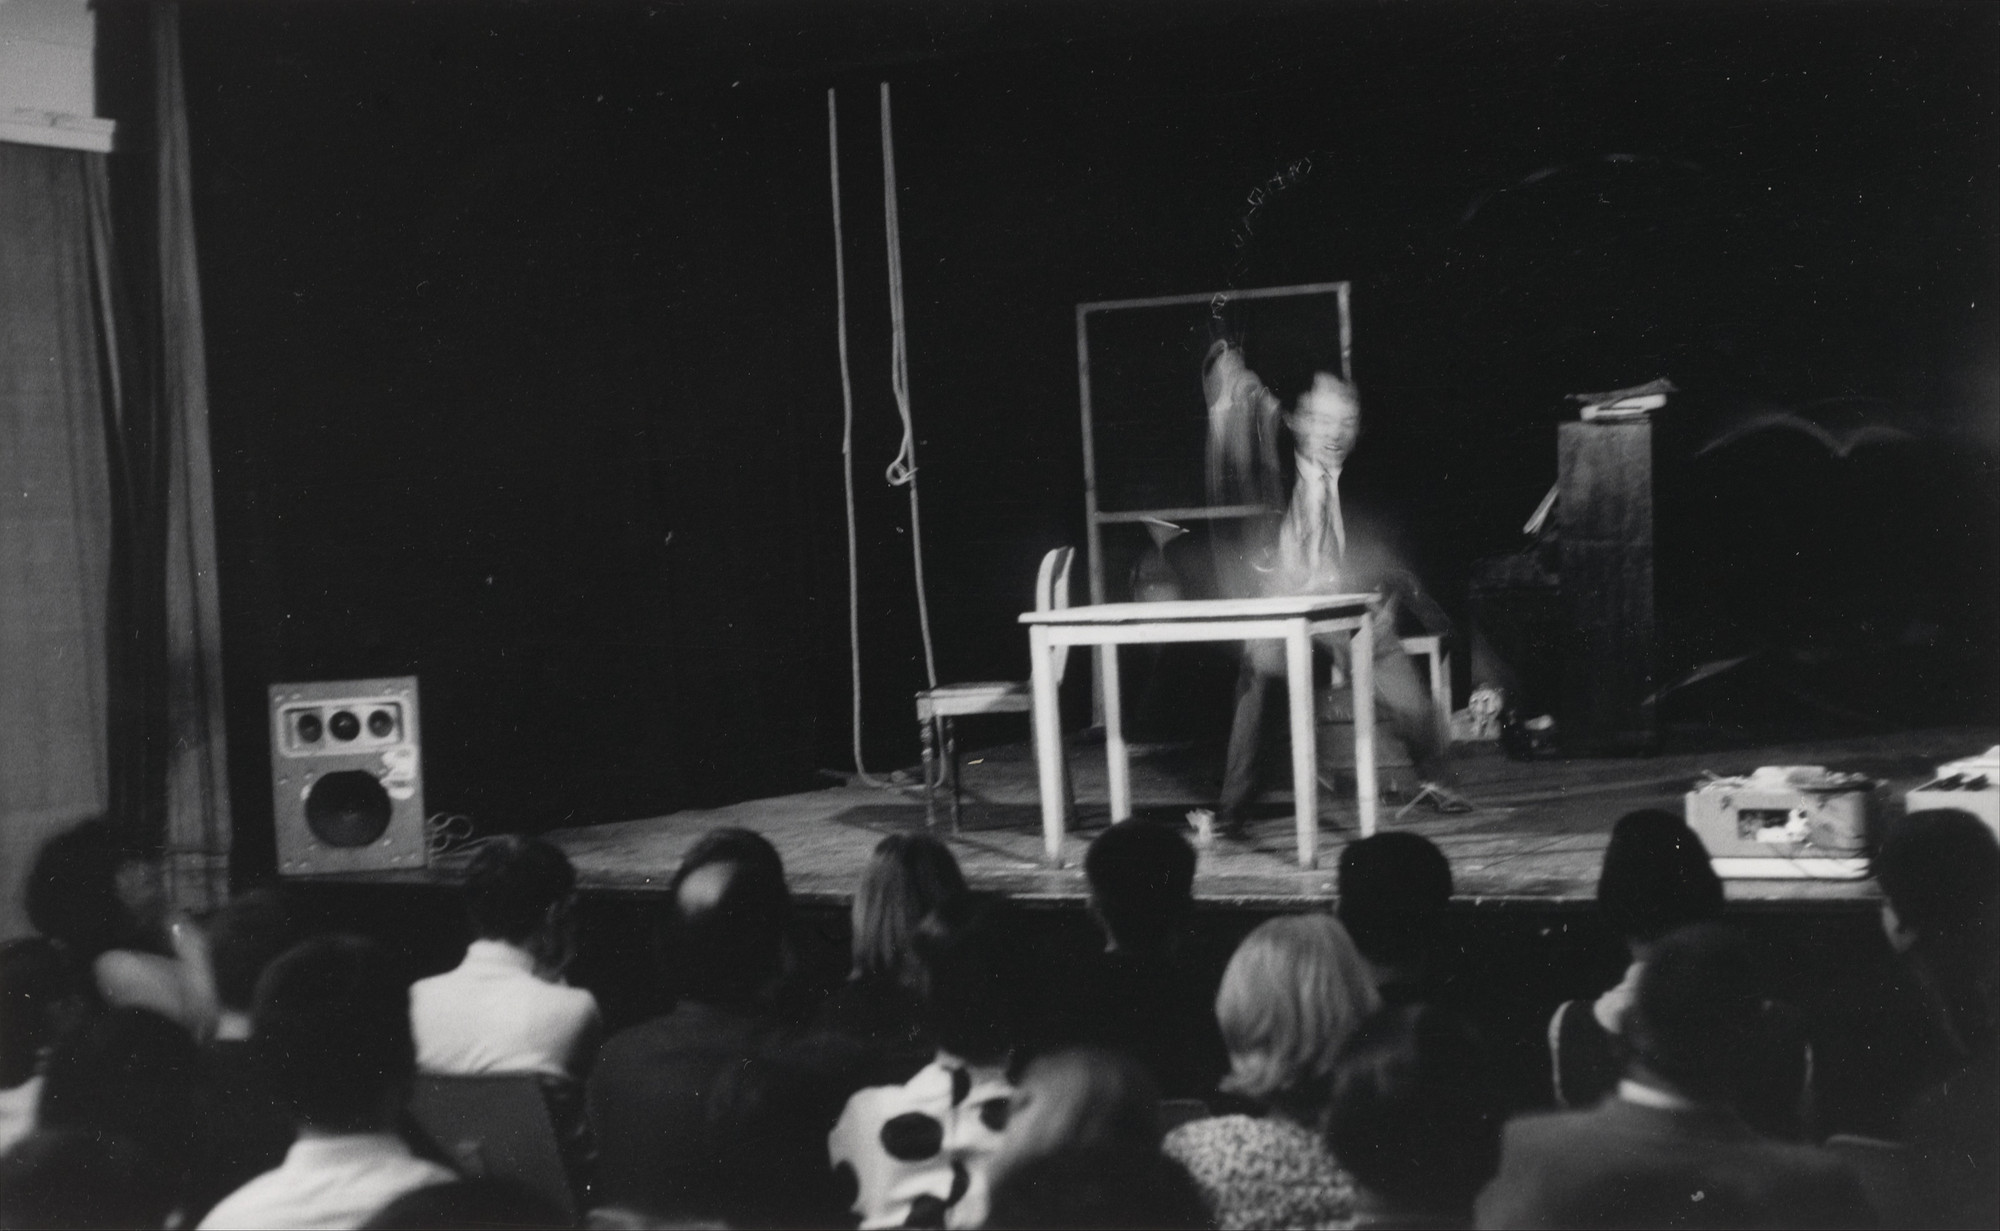 Nam June Paik. Nam June Paik's One for Violin, performed during Neo-Dada in der Musik, Kammerspiele, Düsseldorf, June 16, 1962. 1962, printed 1977